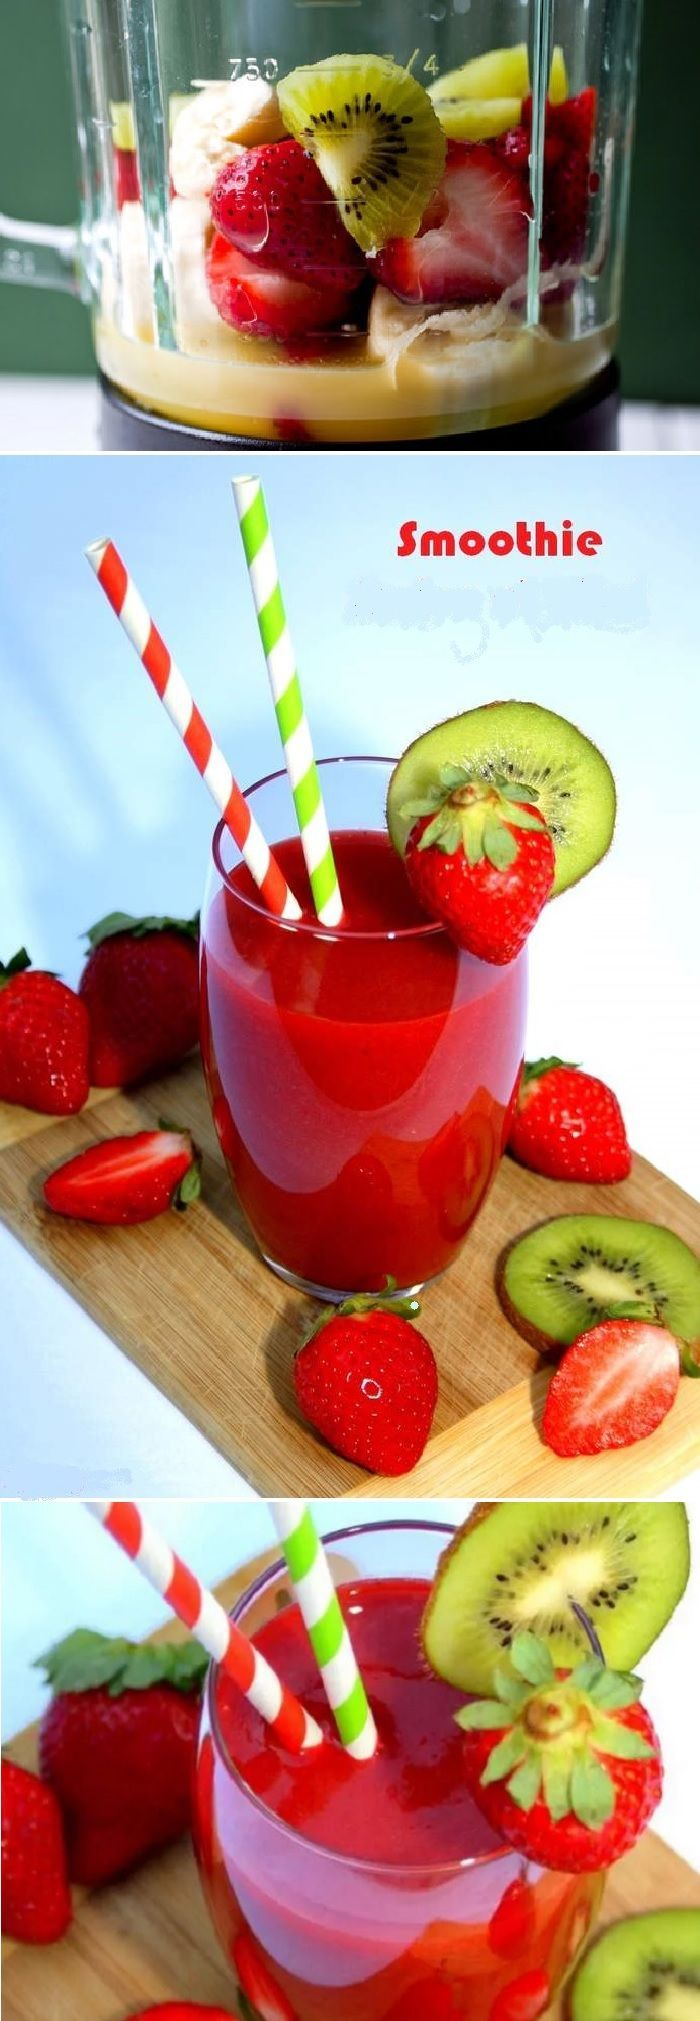 See more here ► https://www.youtube.com/watch?v=ITkJDrQsNKg Tags: how to lose weight in one week without exercising, lose weight without exercises, lose weight without dieting or exercise - Strawberry and Kiwi Smoothie ! A snack or dessert vitamin and 100% FRUIT, Kiwi Strawberry smoothie good !!! It's fresh, sparkling, light and consumes without complex !!! I say with this little smoothie we are pleased even in diet !!!!